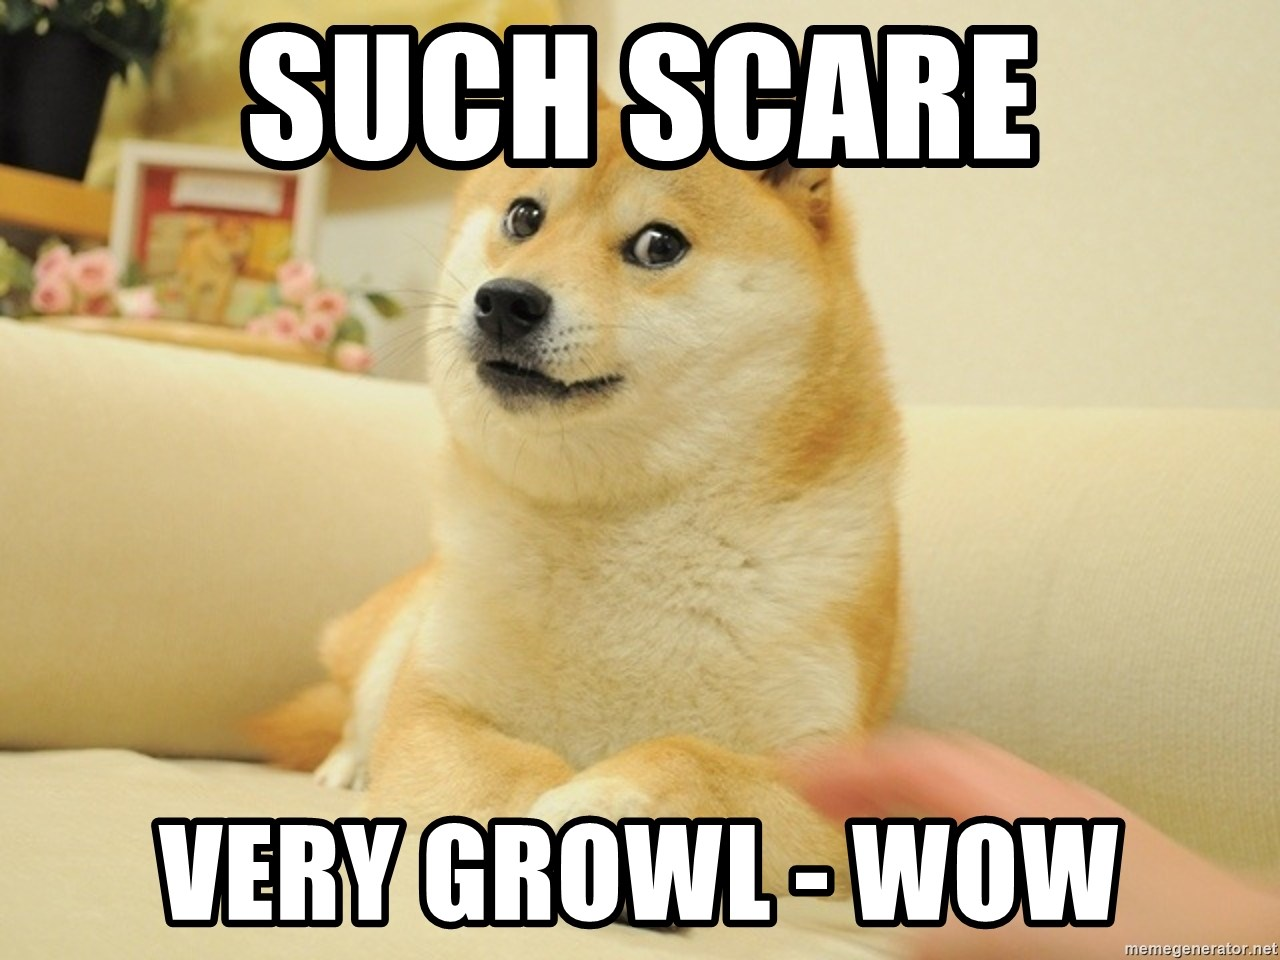 so doge - Such scare very growl - wow